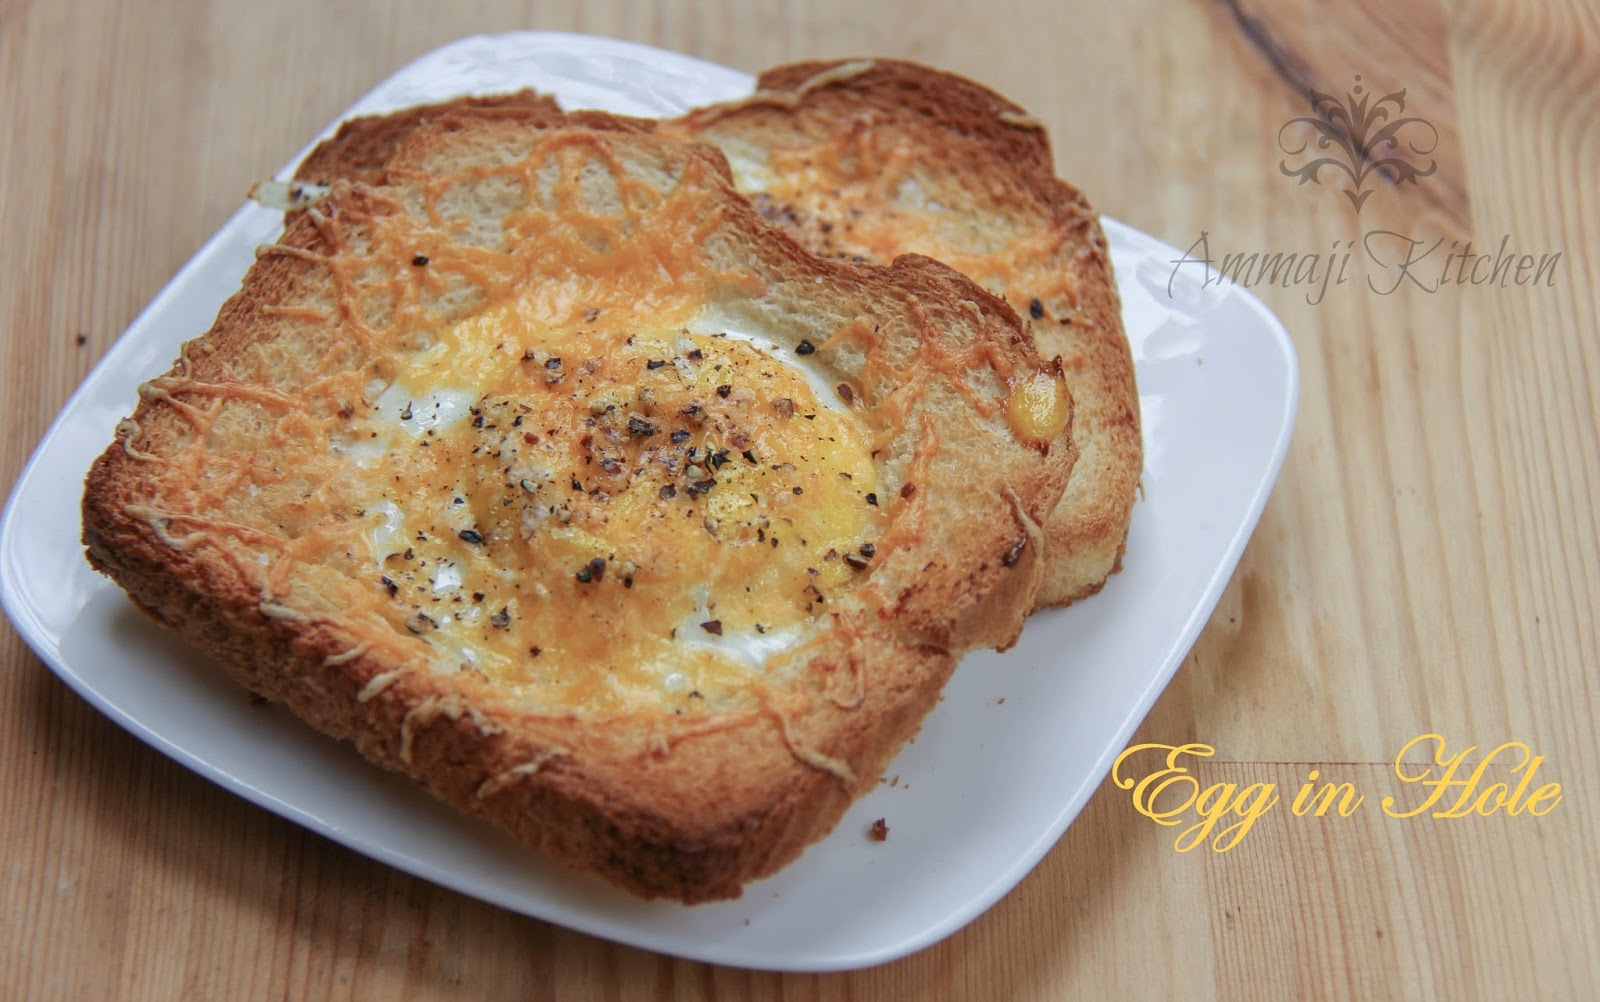 Egg in the hole indian food recipes ammaji kitchen egg in the hole as the name suggests a sunny side egg in a bread hole baked or cooked on stove top as i have mentioned in my previous posts we me forumfinder Choice Image